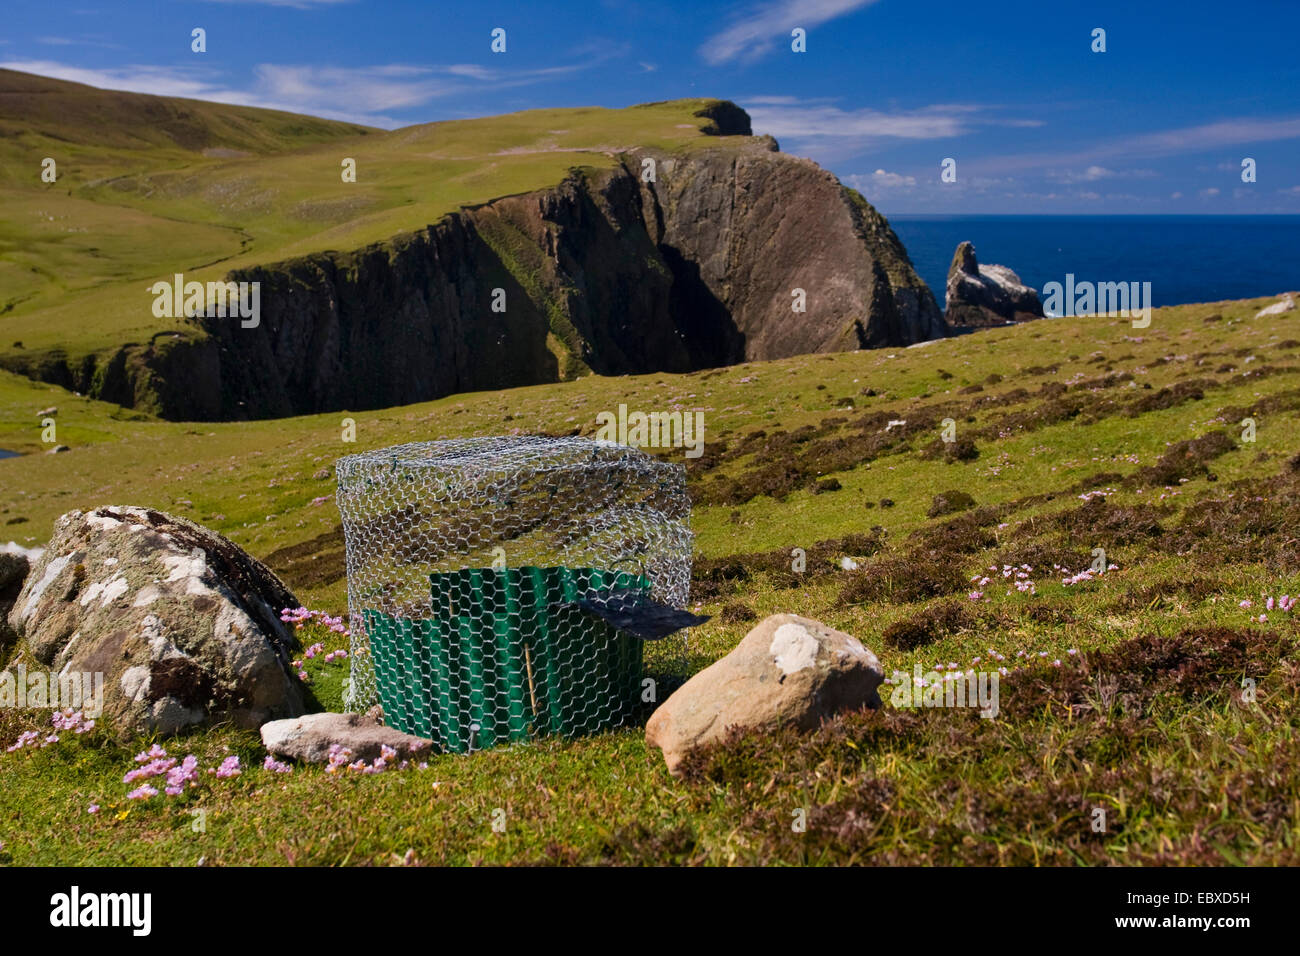 small trap with lure for snaring song birds, United Kingdom, Scotland, Shetland Islands, Fair Isle - Stock Image